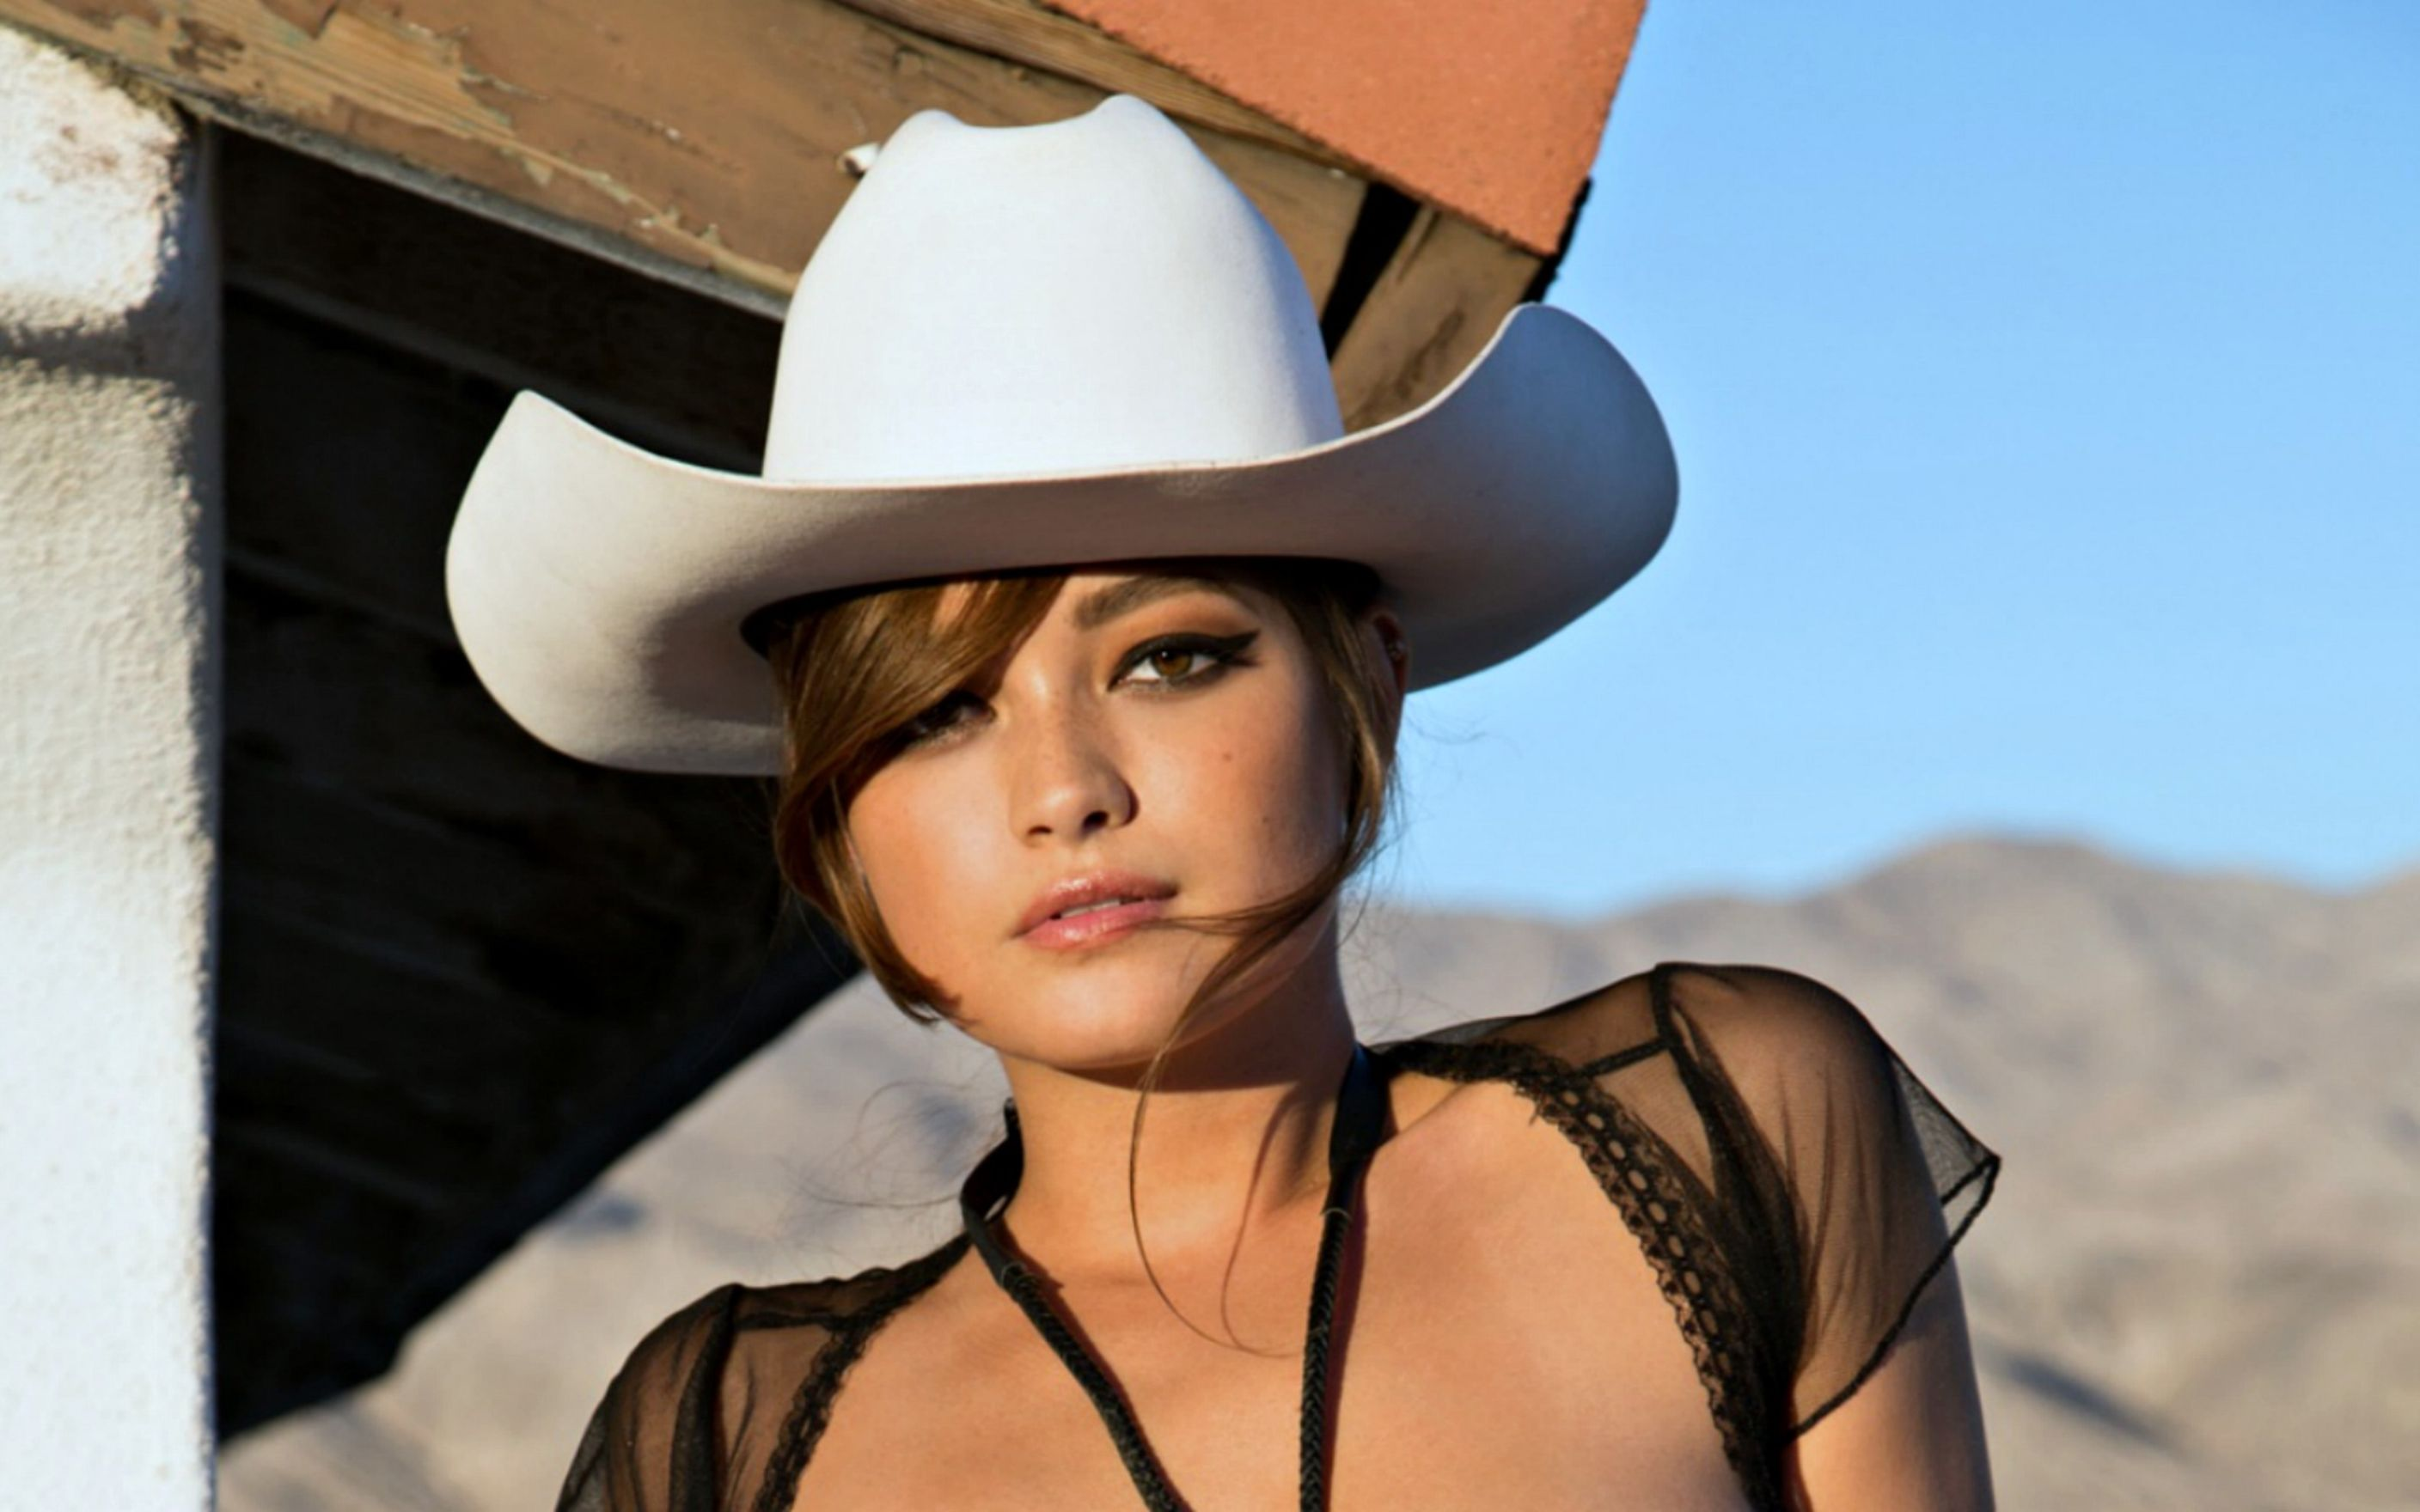 Download free HD Cowgirl Chelsie Aryn Wallpaper, image